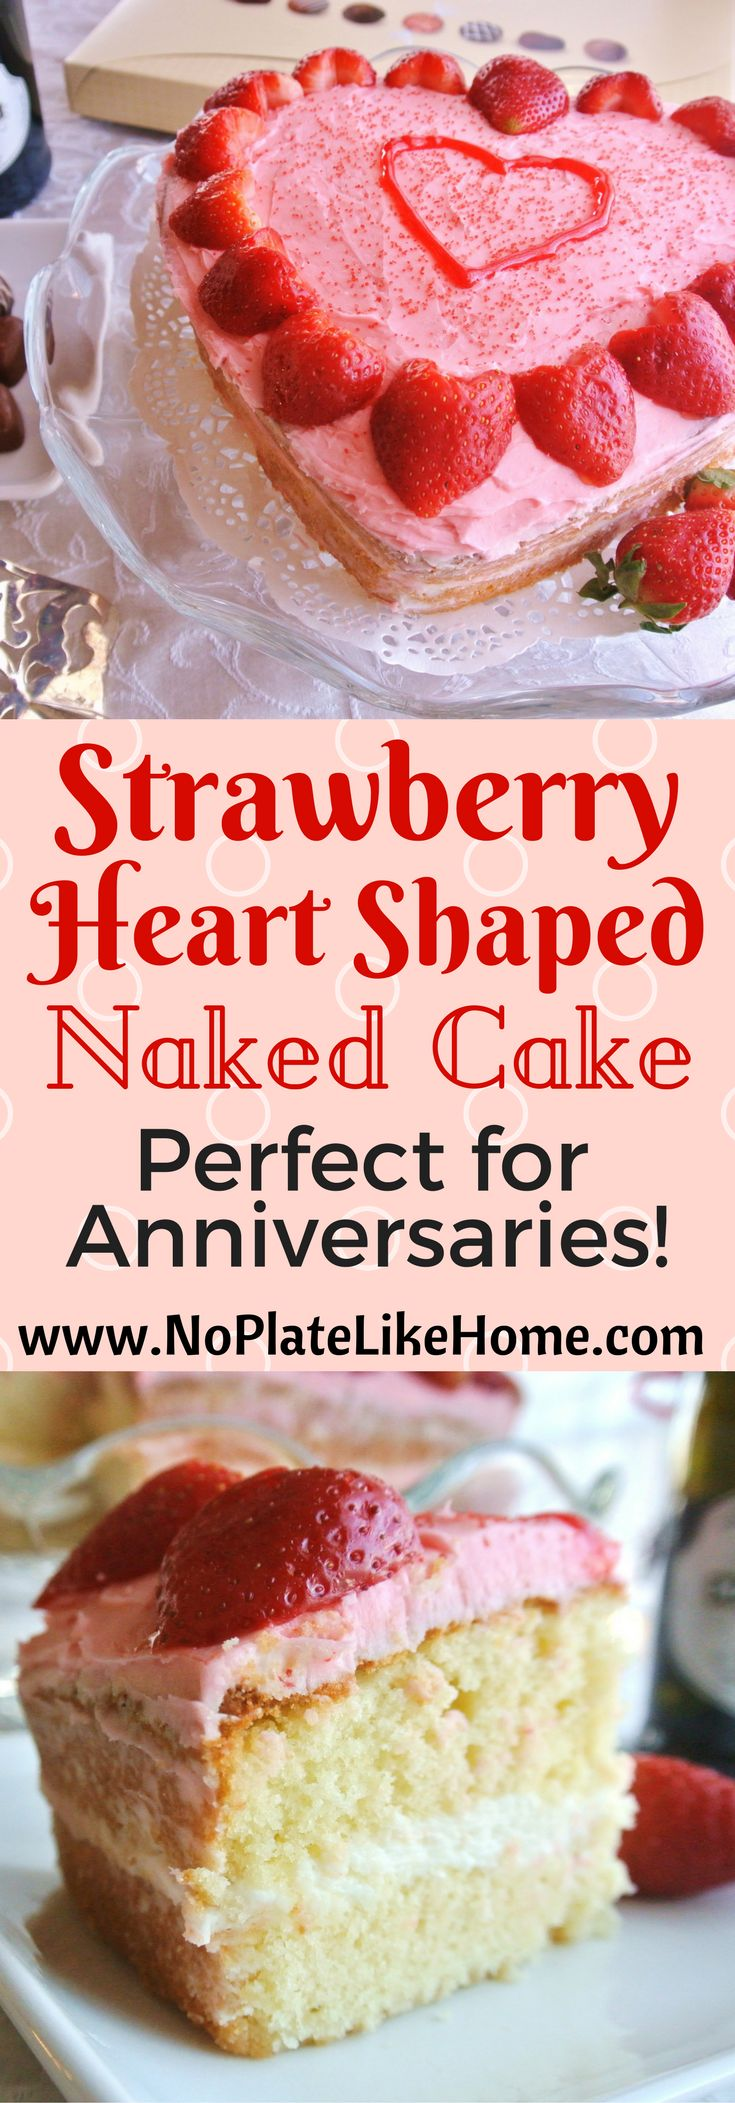 This is a cute heart-shaped naked cake to make your significant other for your anniversary or just to show them you love them. Use any cake recipe you like but, this one is almond sour cream pound cake with almond buttercream frosting!